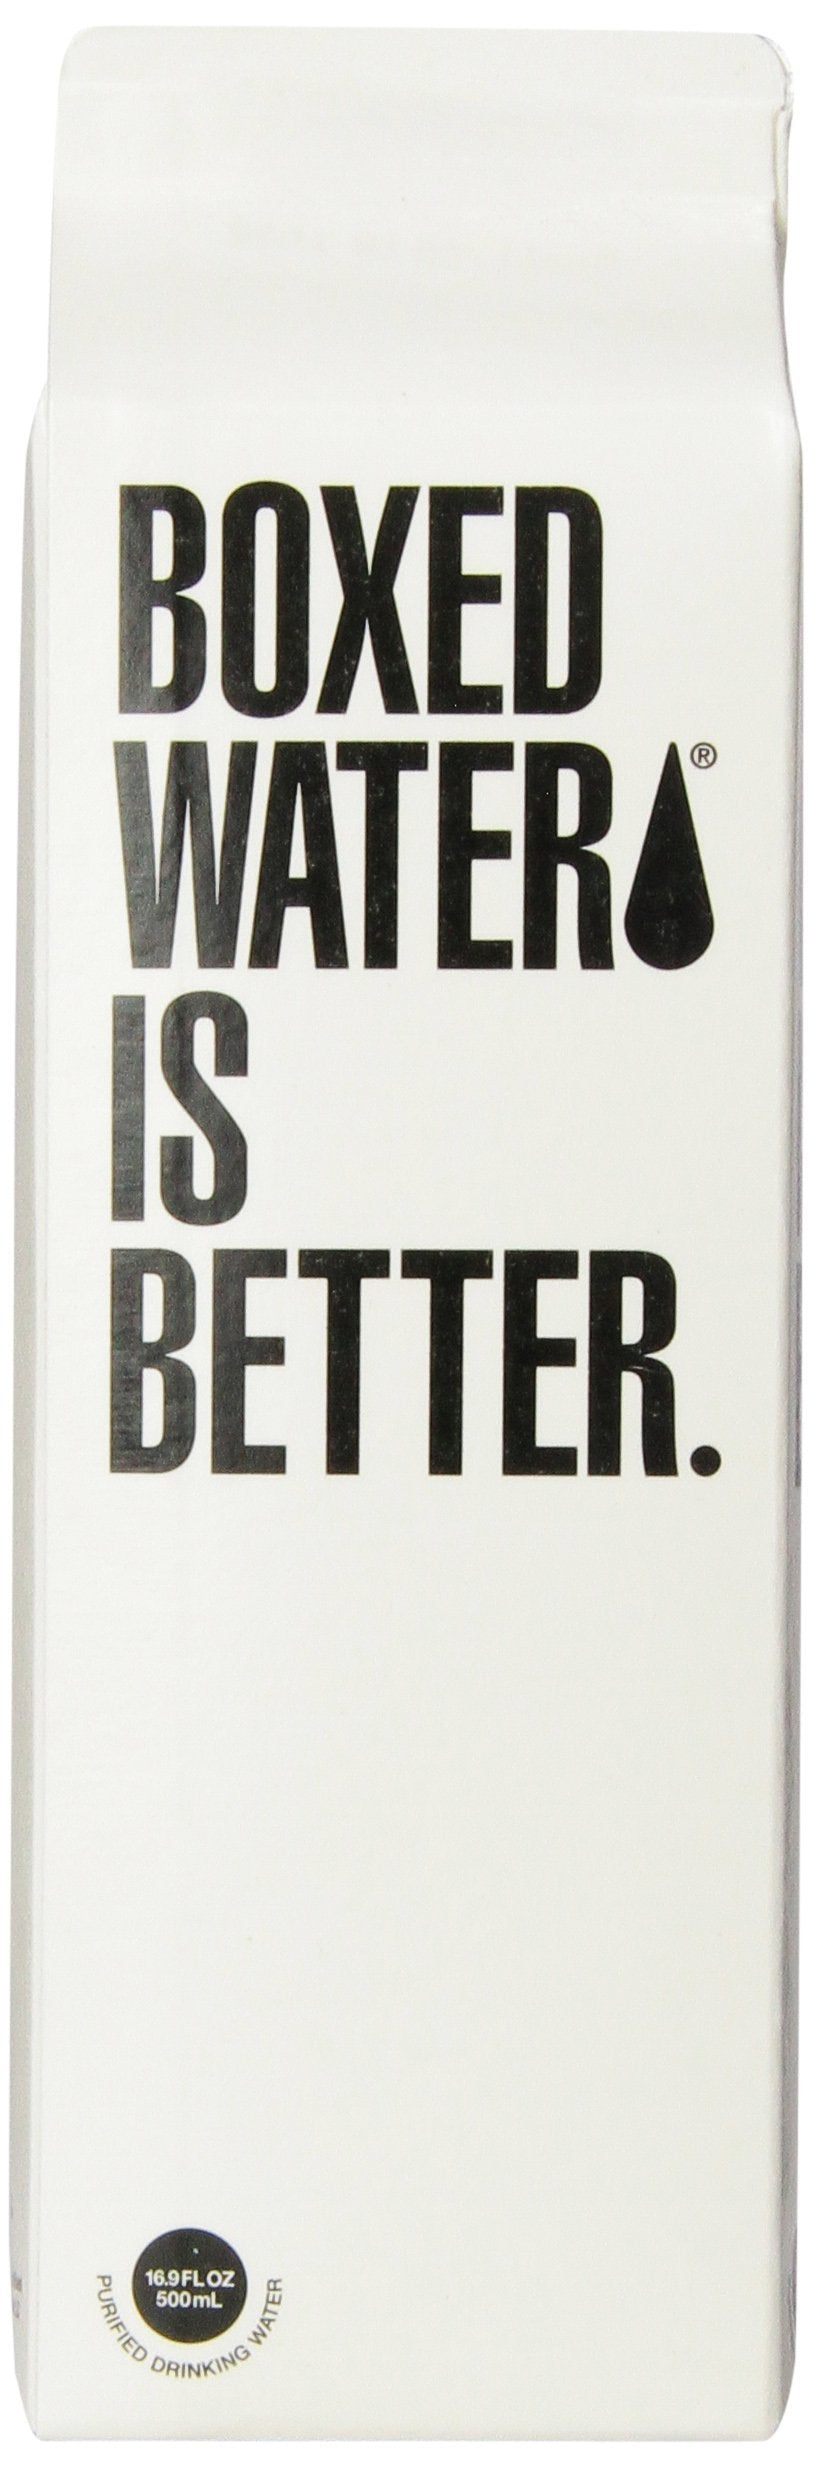 Boxed Water Is Better - 1000ml (Case of 12)